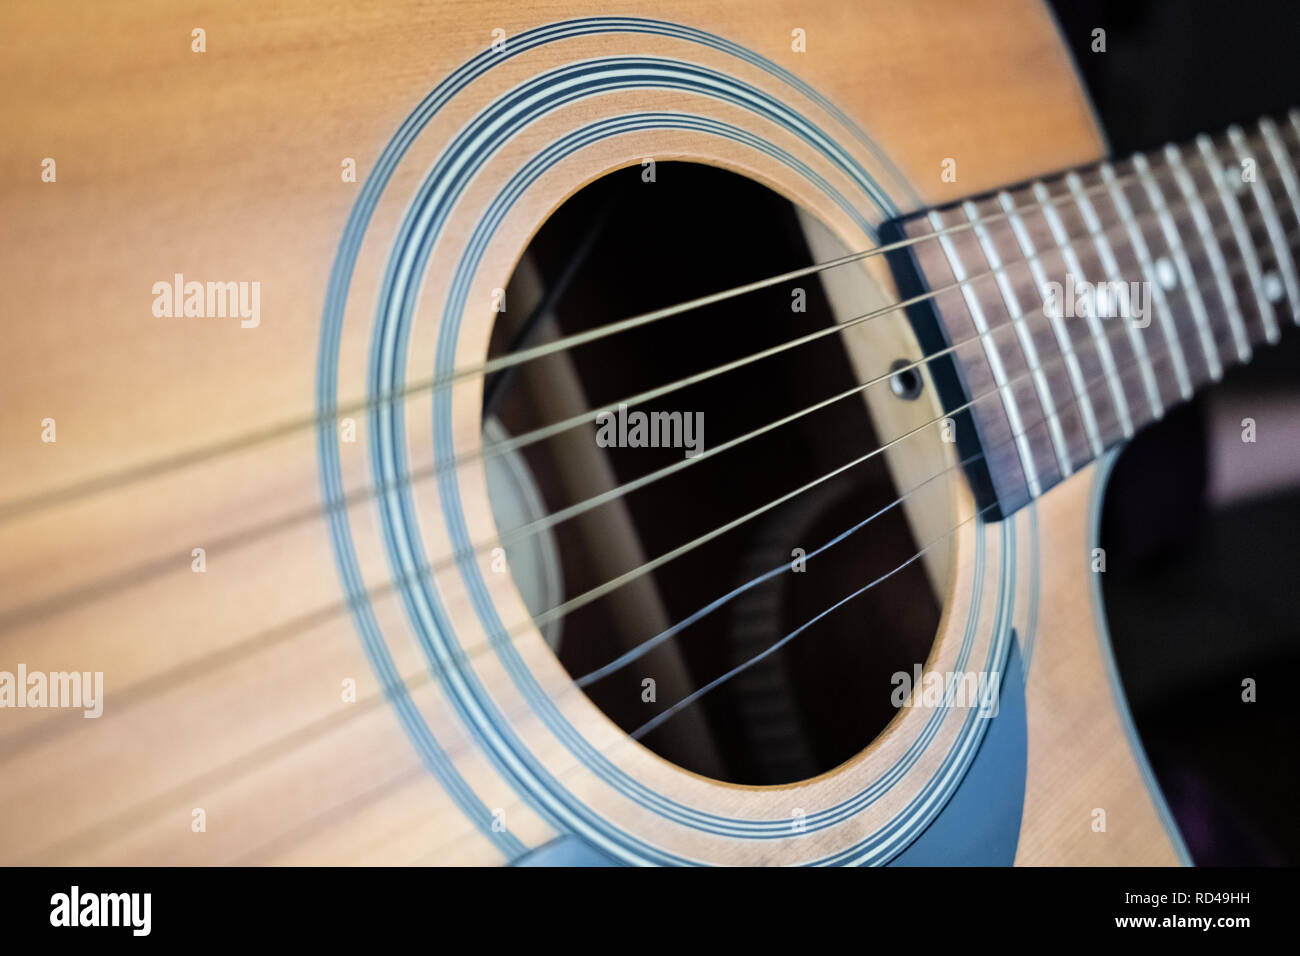 Trembling guitar string, electronic shutter distortion effect. Close-up image of resonating strings captured with wave effect - Stock Image